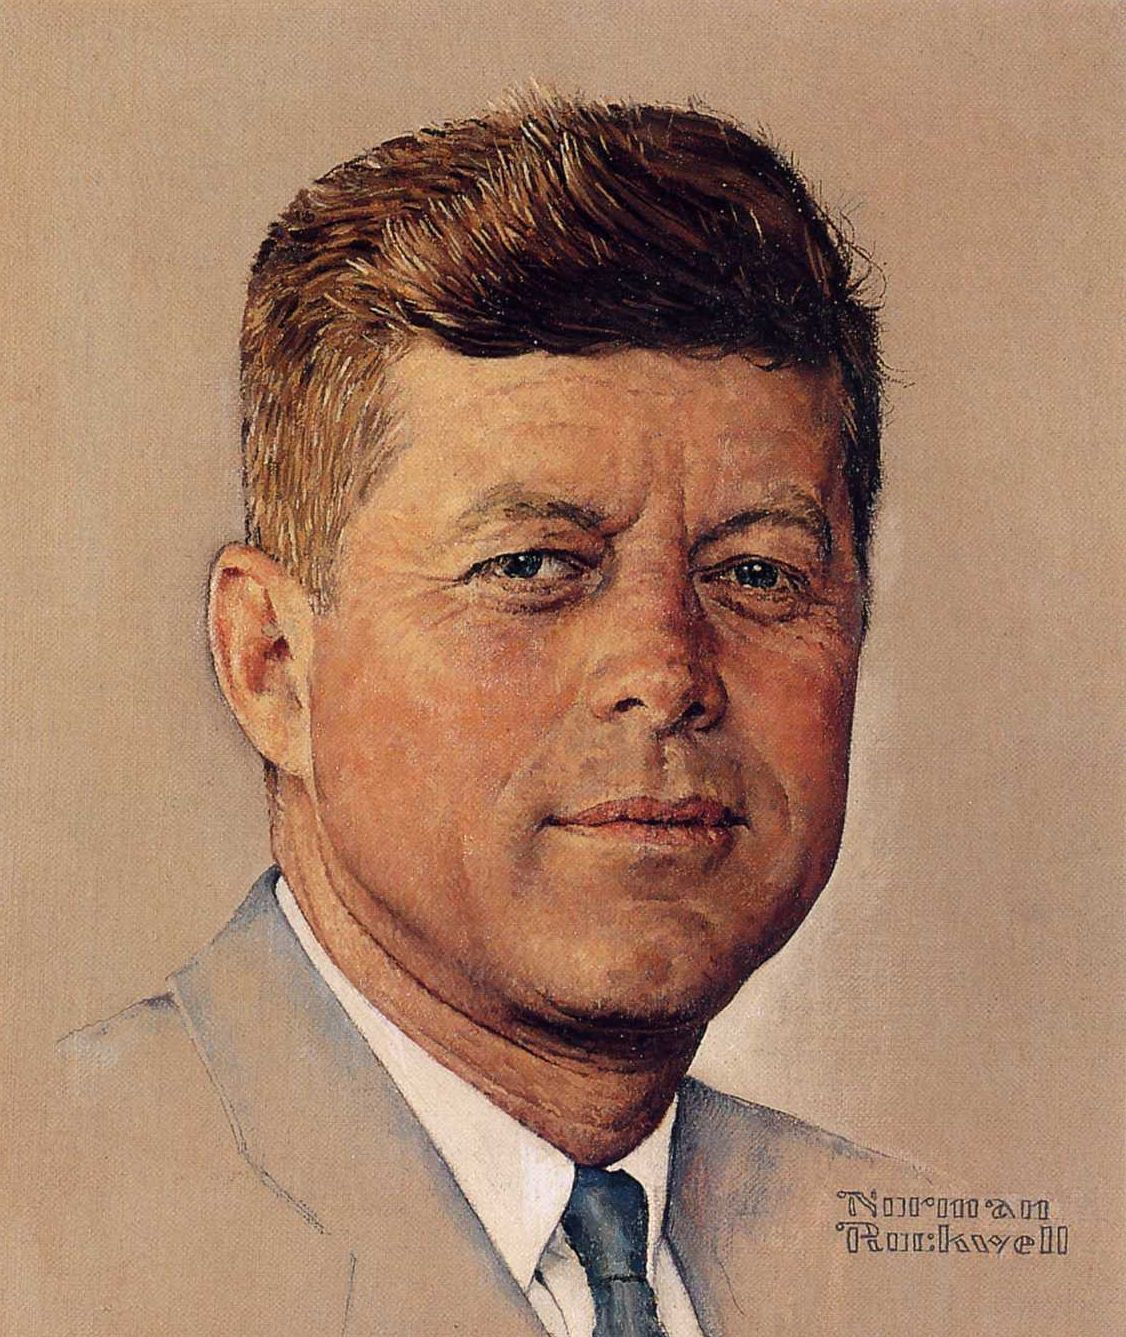 Norman Rockwell: Portrait of John F. Kennedy